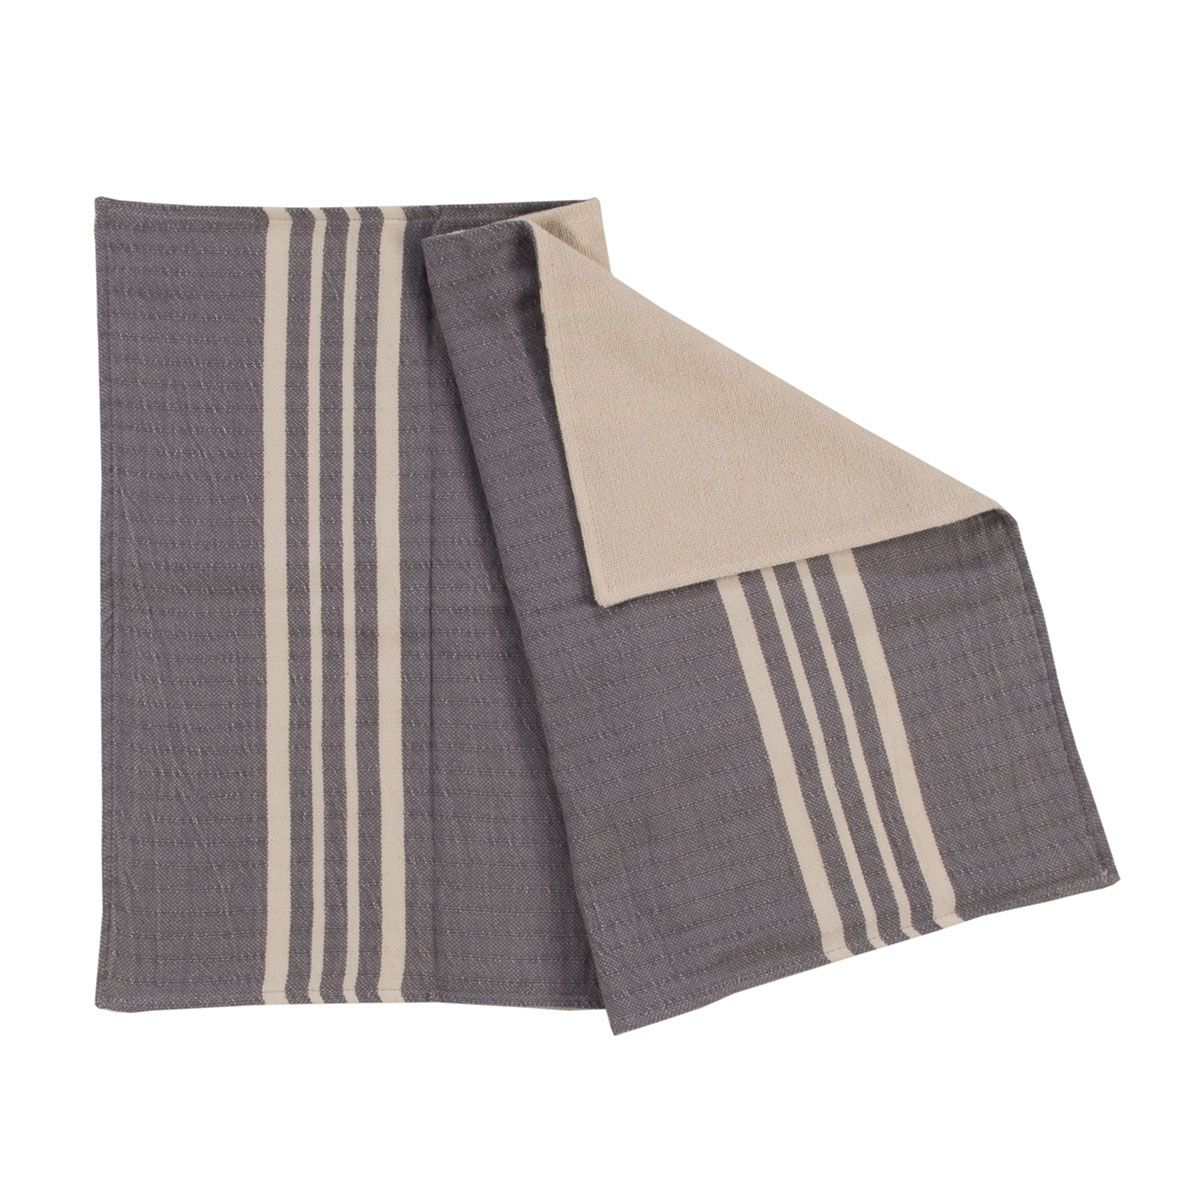 Peshtowel Mini Sultan / Dark Grey (50x70)